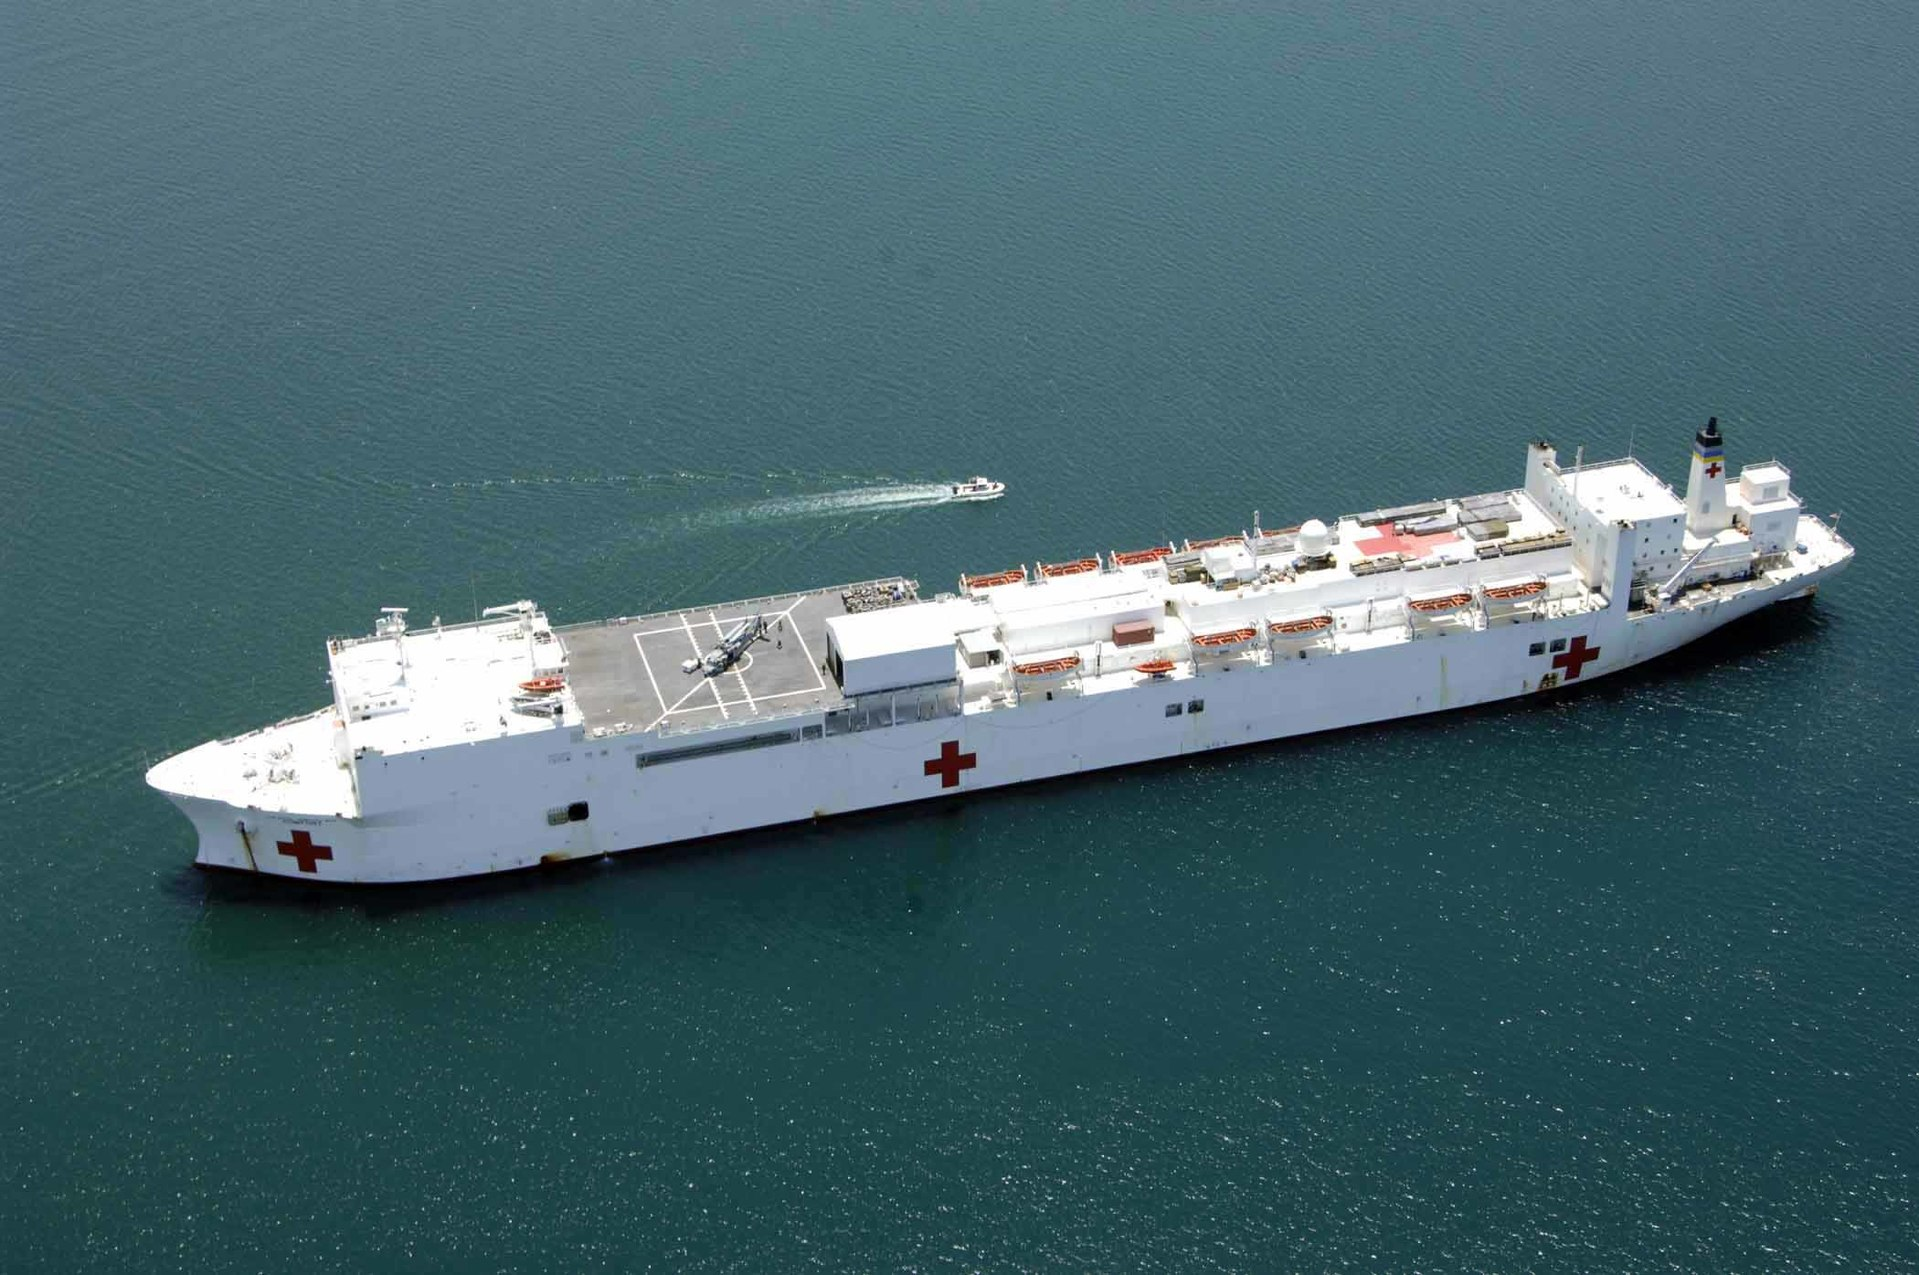 United States Marine Corps: News - Page 2 1920px-090411-A-1786S-088_-_USNS_Comfort_%28T-AH-20%29_in_Hati